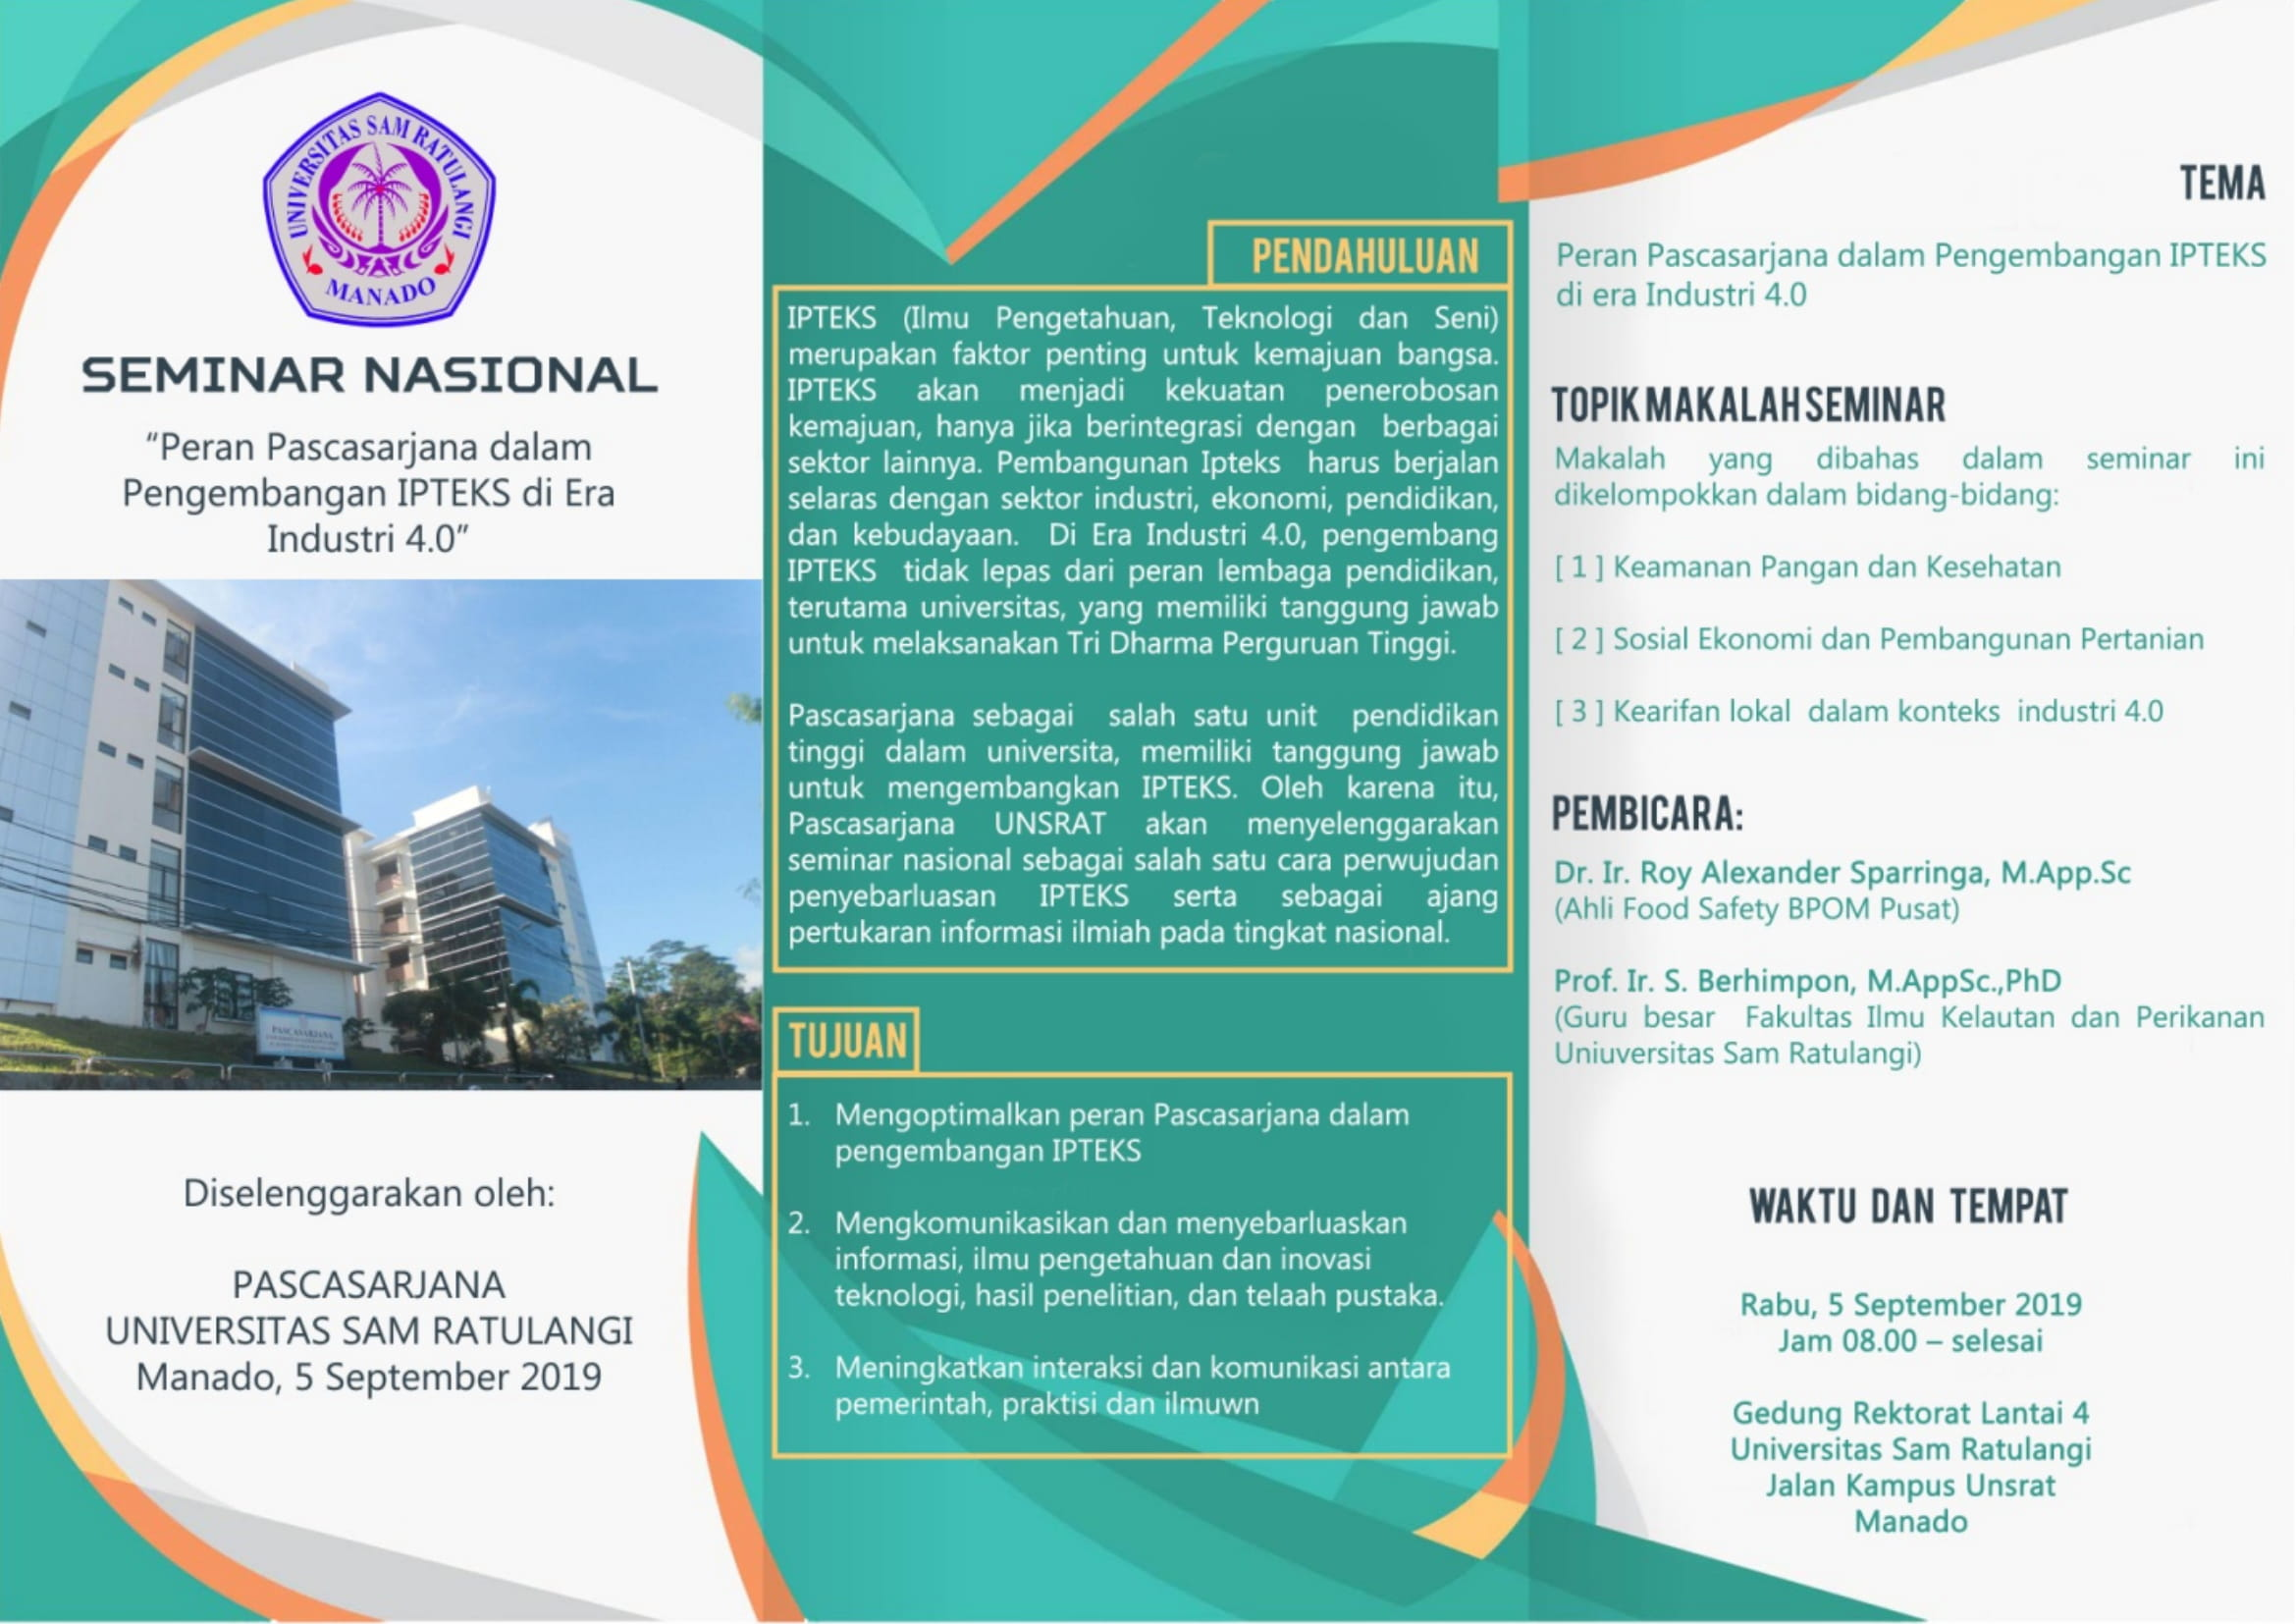 "Come and Join Us in a National Seminar ""Peran Pascasarjana Dalam Pengembangan IPTEKS di Era Industri 4.0"" (5 September 2019)"